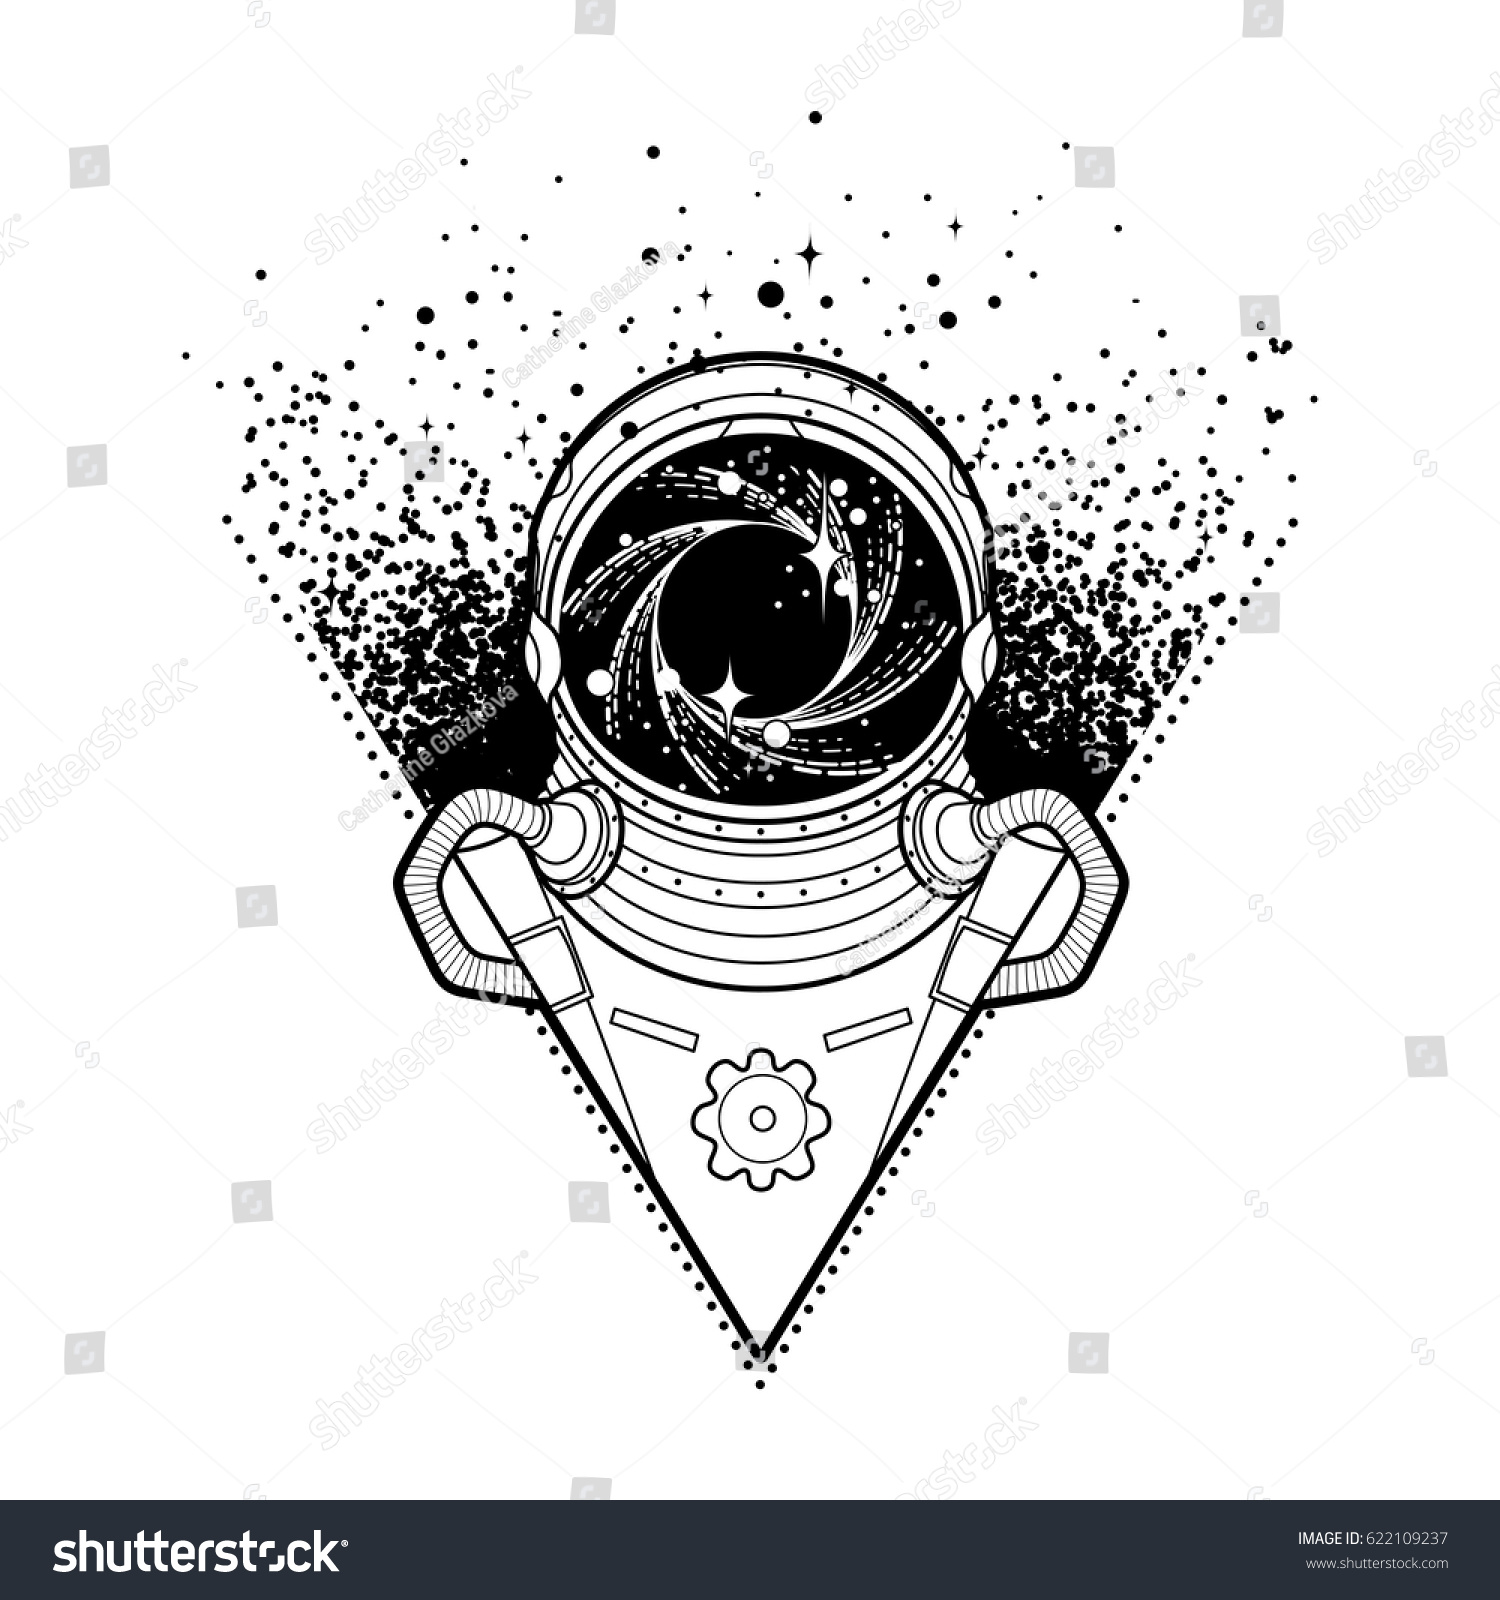 Graphic astronaut black hole starry vortex stock vector for Black hole coloring page